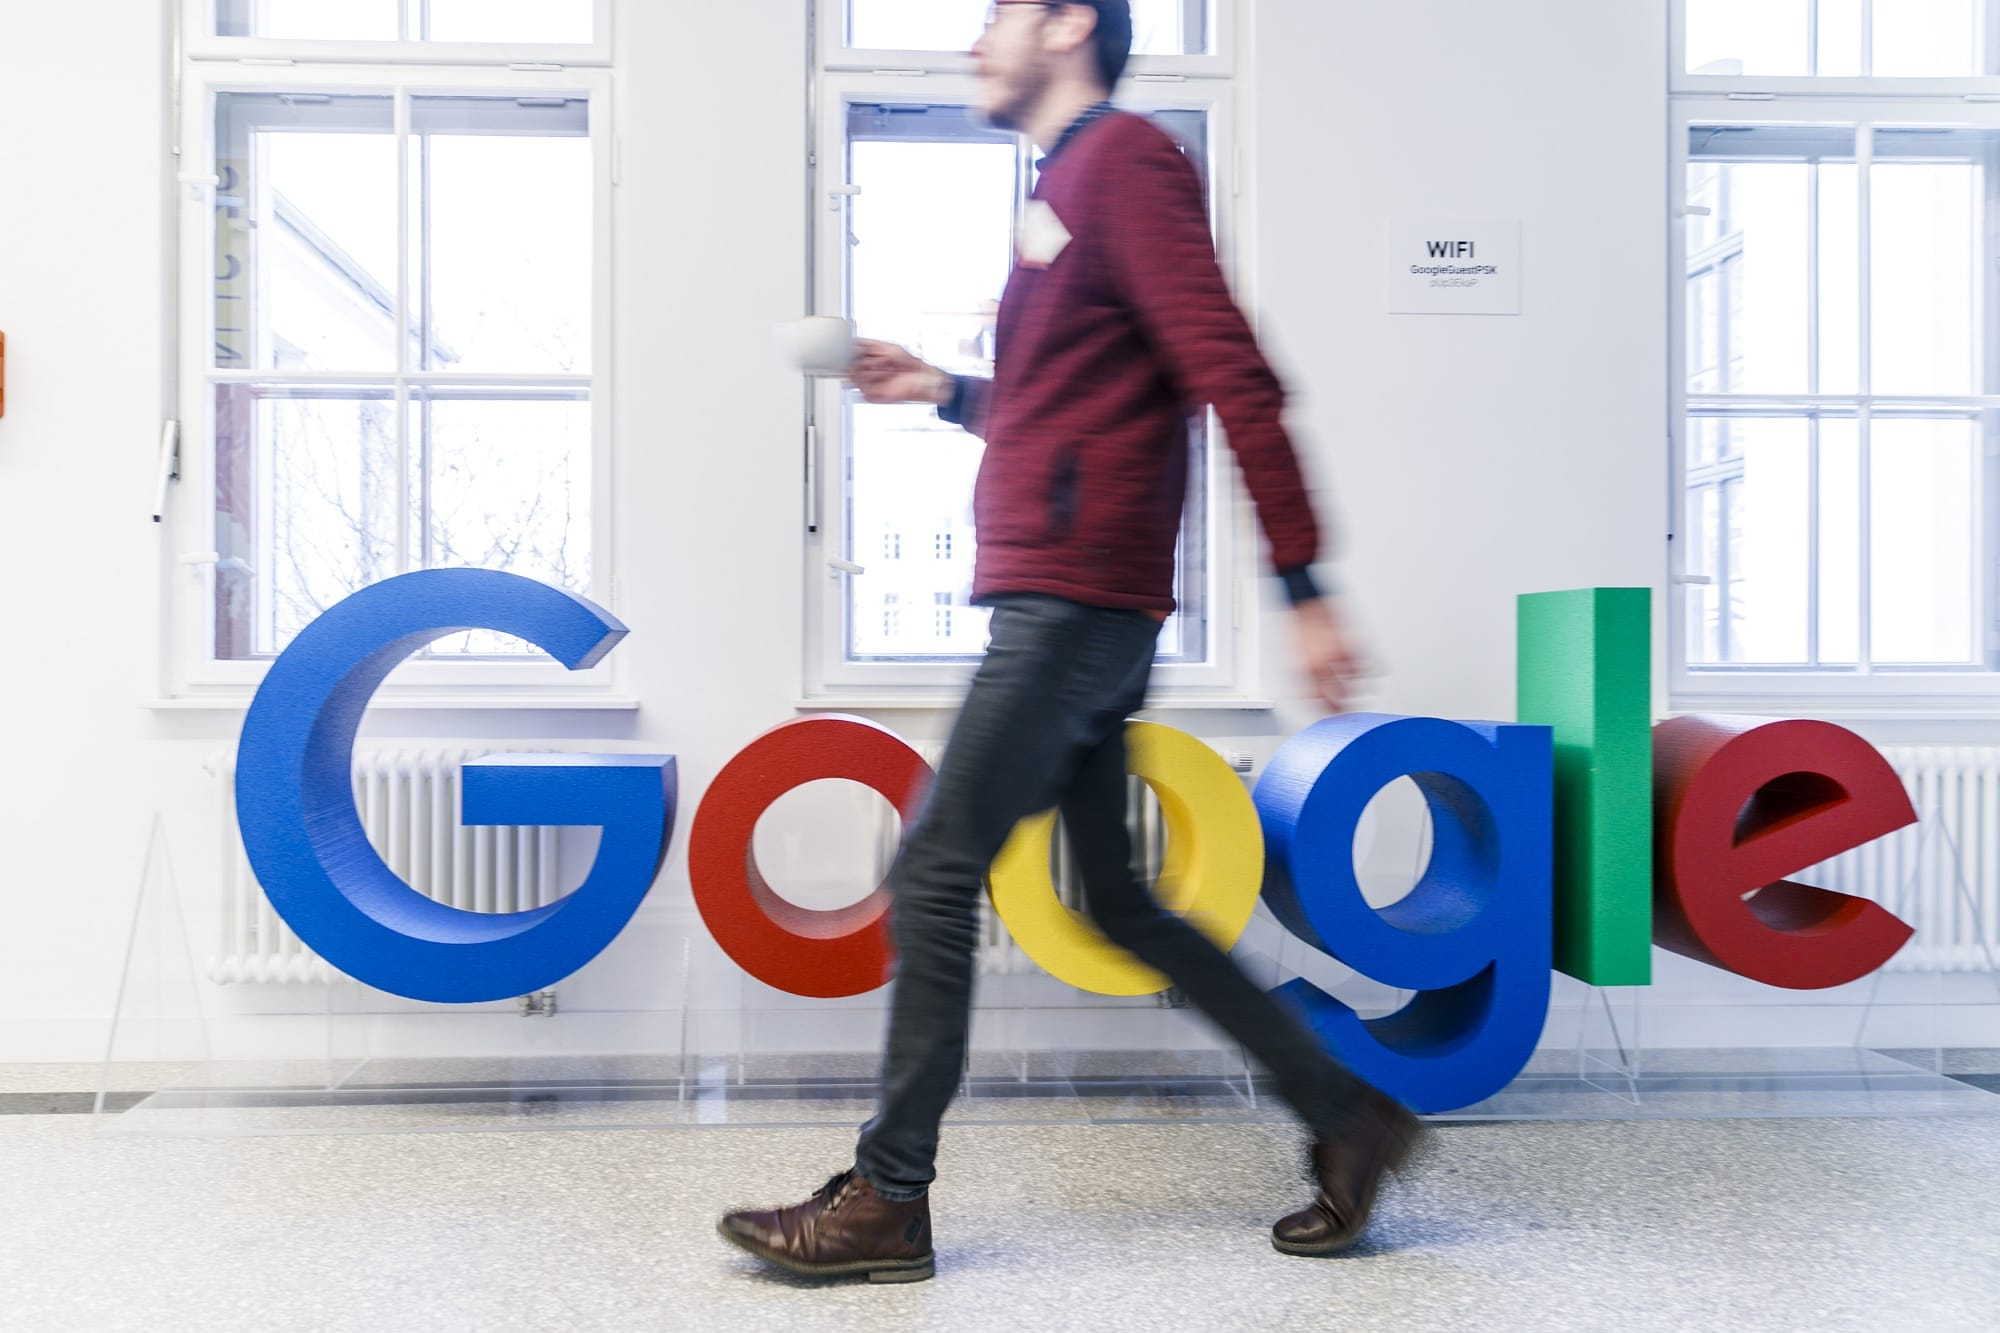 Here's why you should buy Google, according to Jefferies